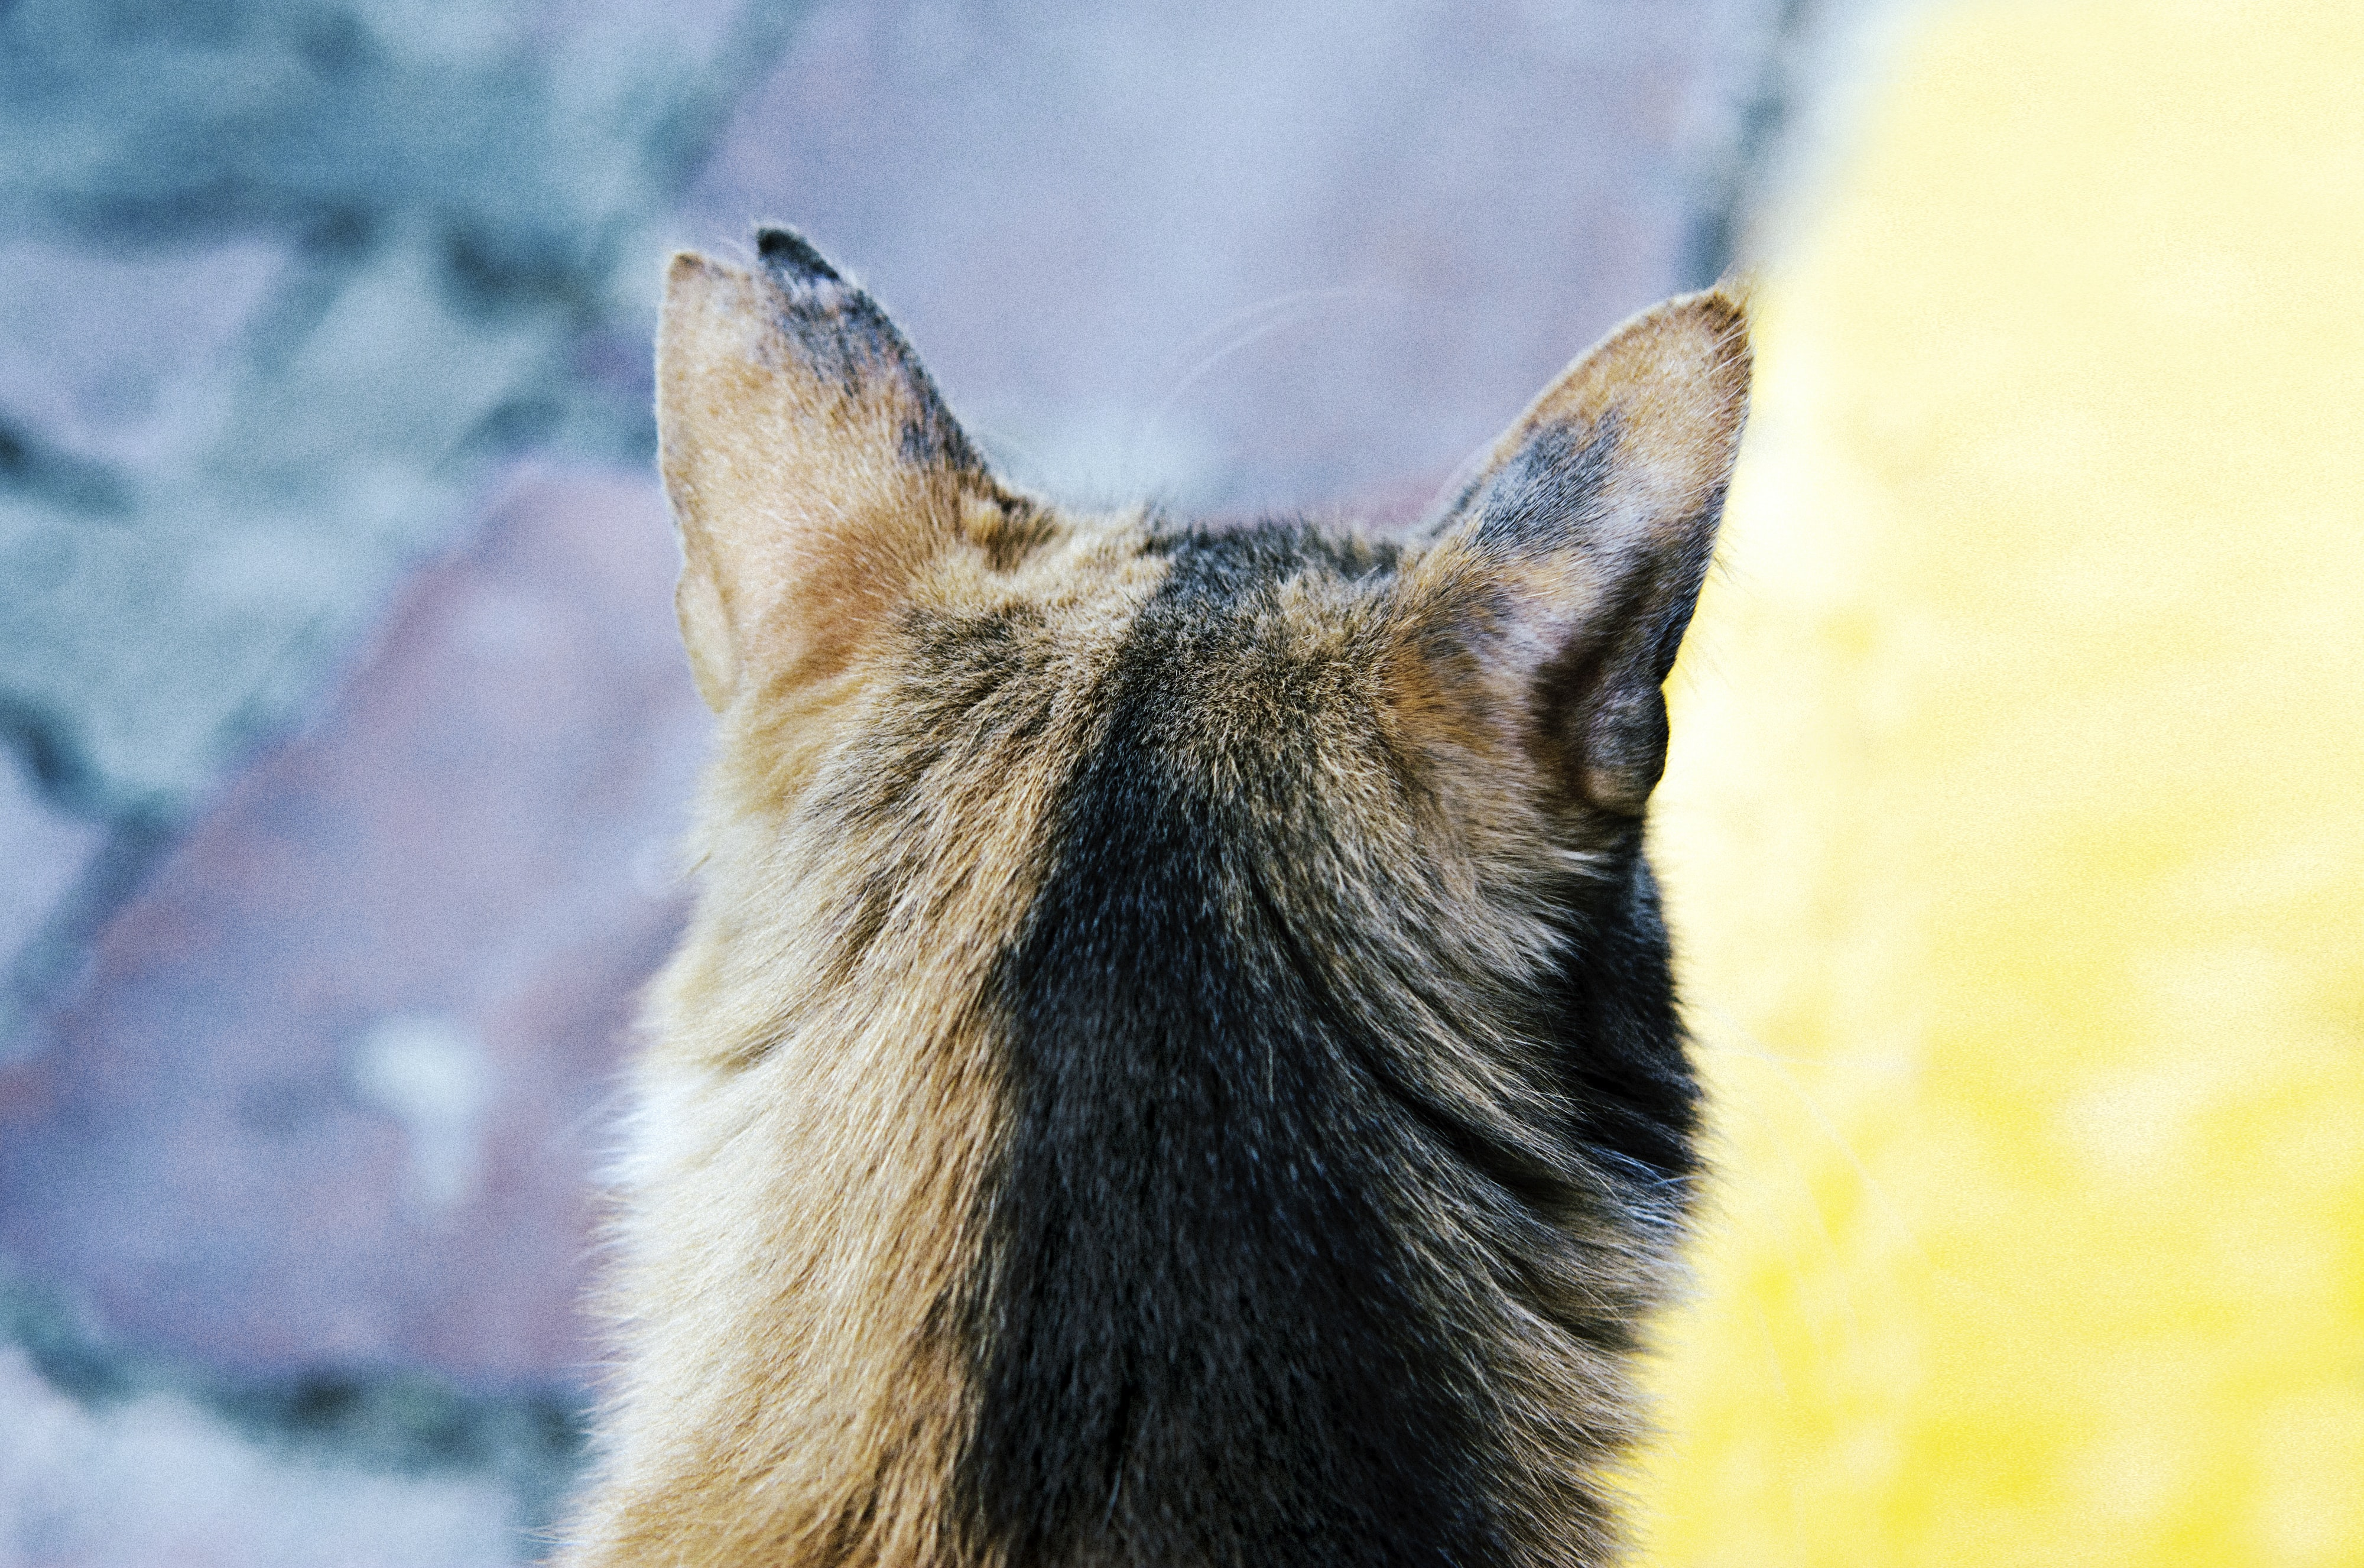 Macro of the back of a dog's head